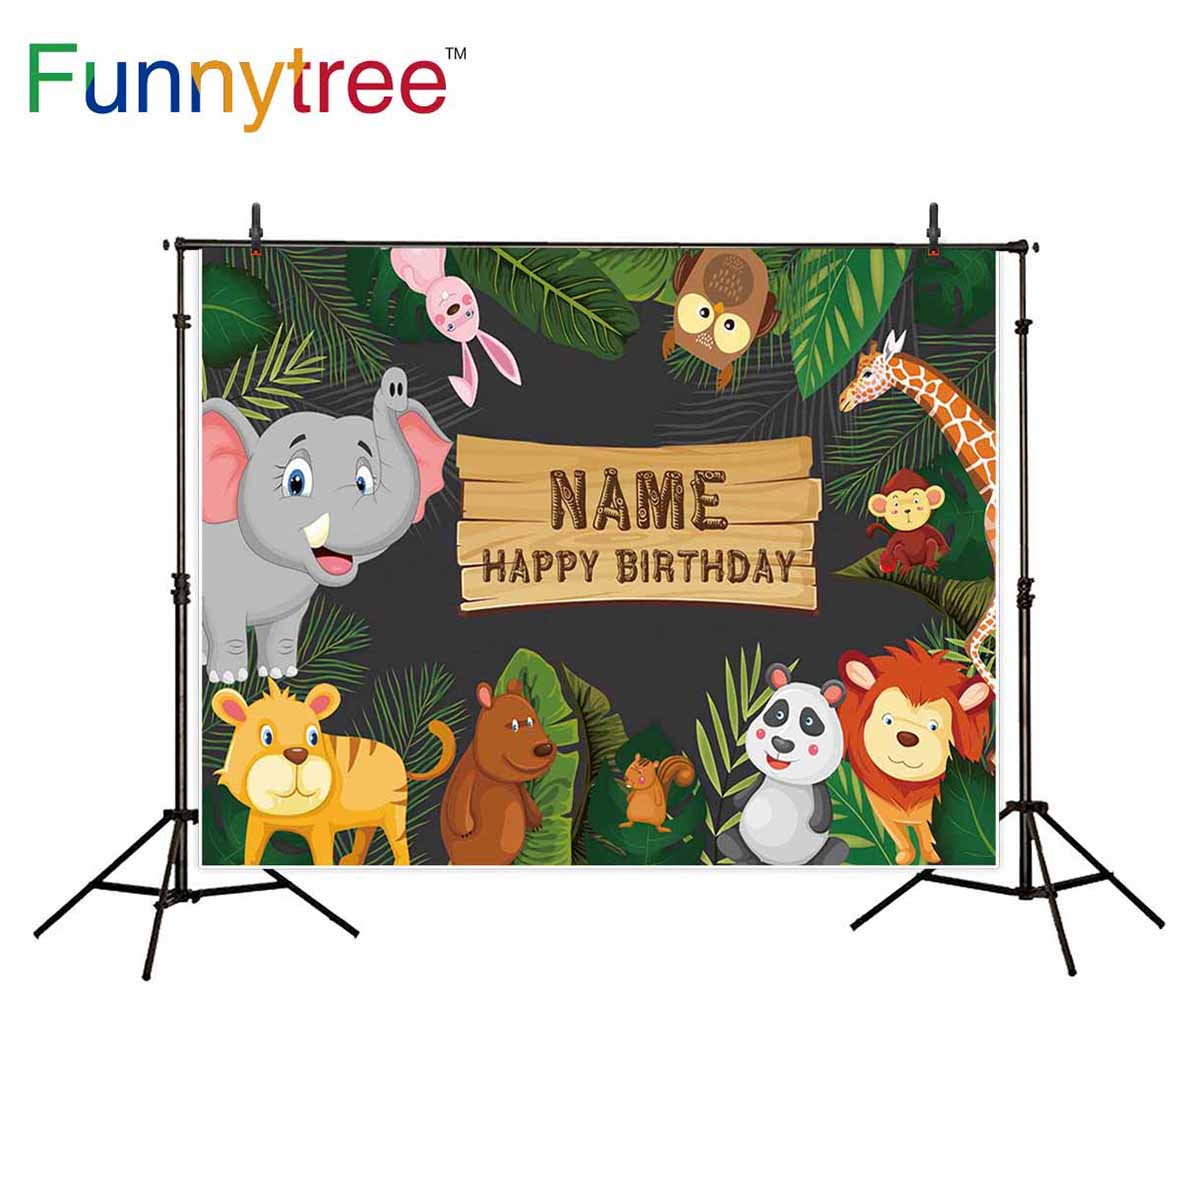 Funnytree birthday backgrounds for photography studio Jungle party animals cartoon leaves forest kid backdrop printed photocall набор автомобильных ковриков novline autofamily для lifan breez 2006 в салон 4 шт nlc 73 01 210